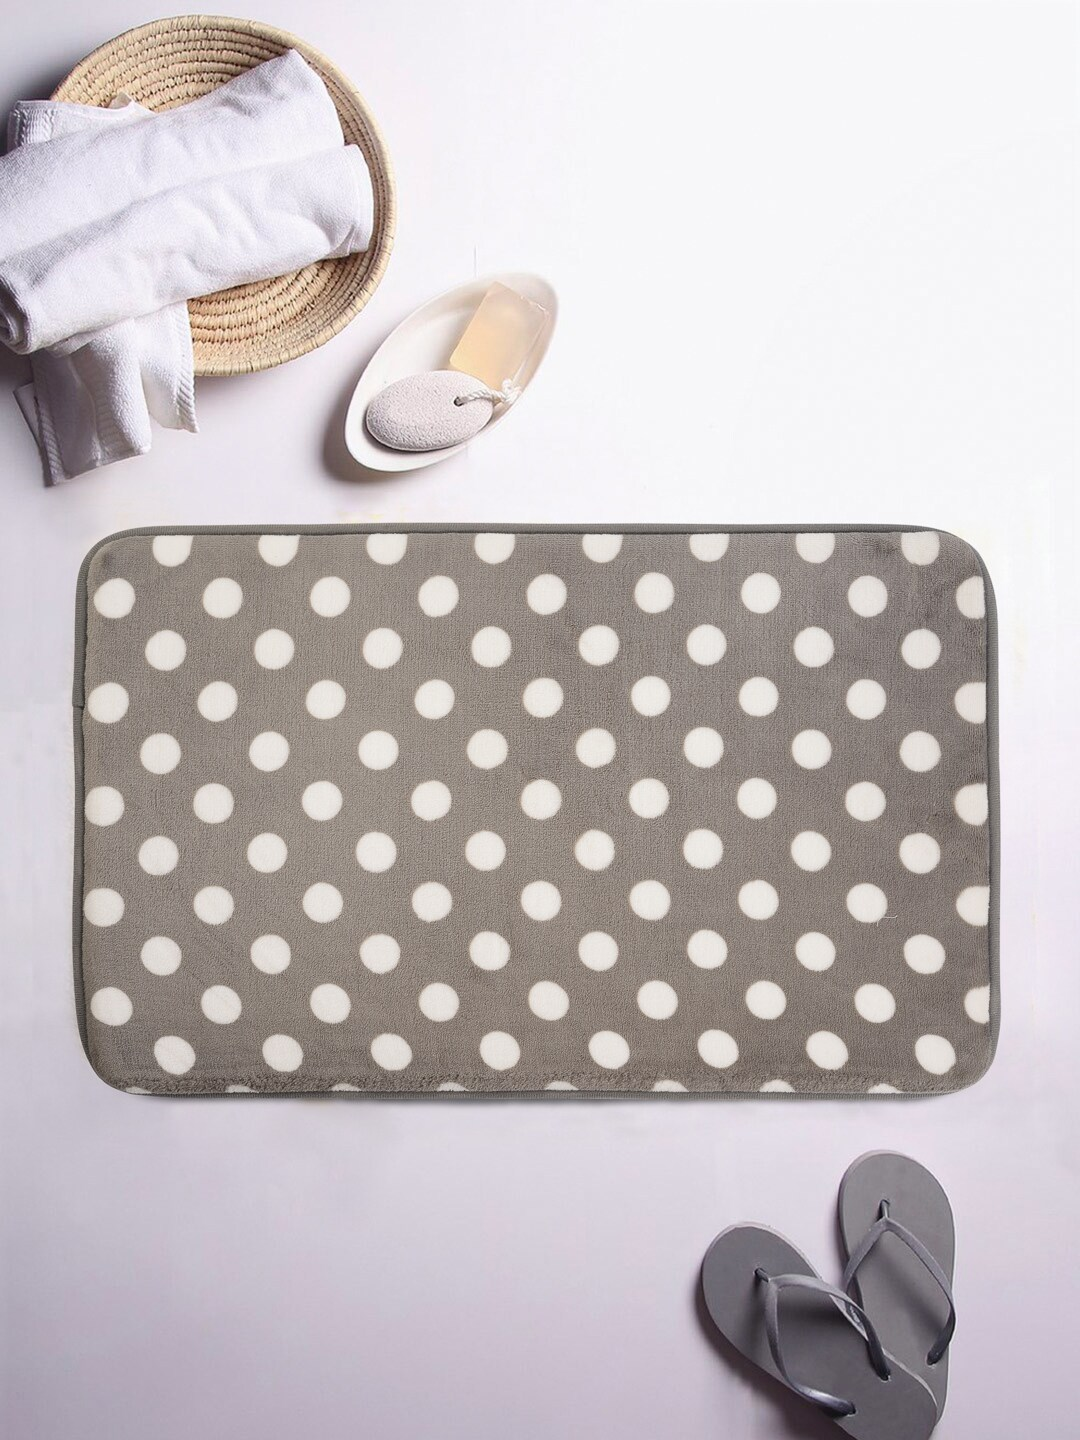 Cortina Grey & White Polka Dot Print Rectangular Bath Rug image